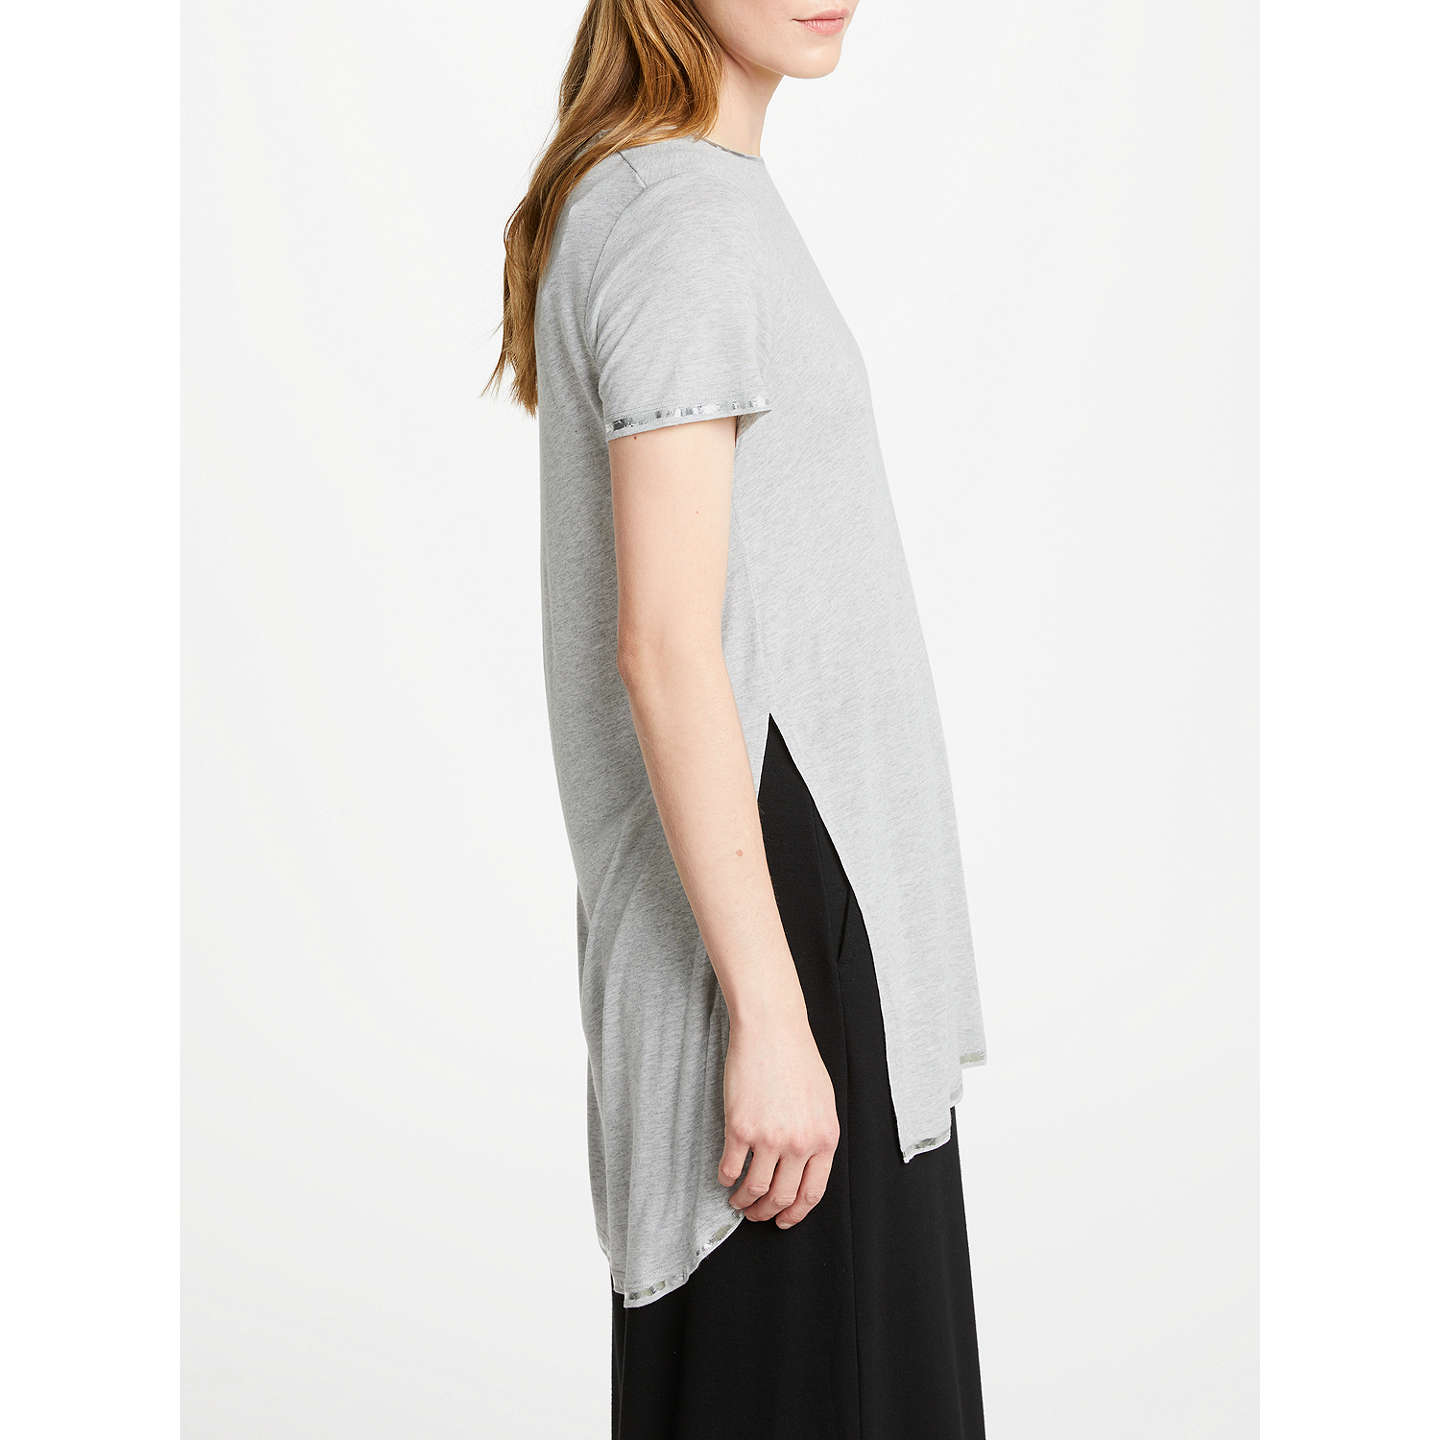 BuyGreat Plains Foil Finish Jersey Top, Grey Shimmer, XS Online at johnlewis.com